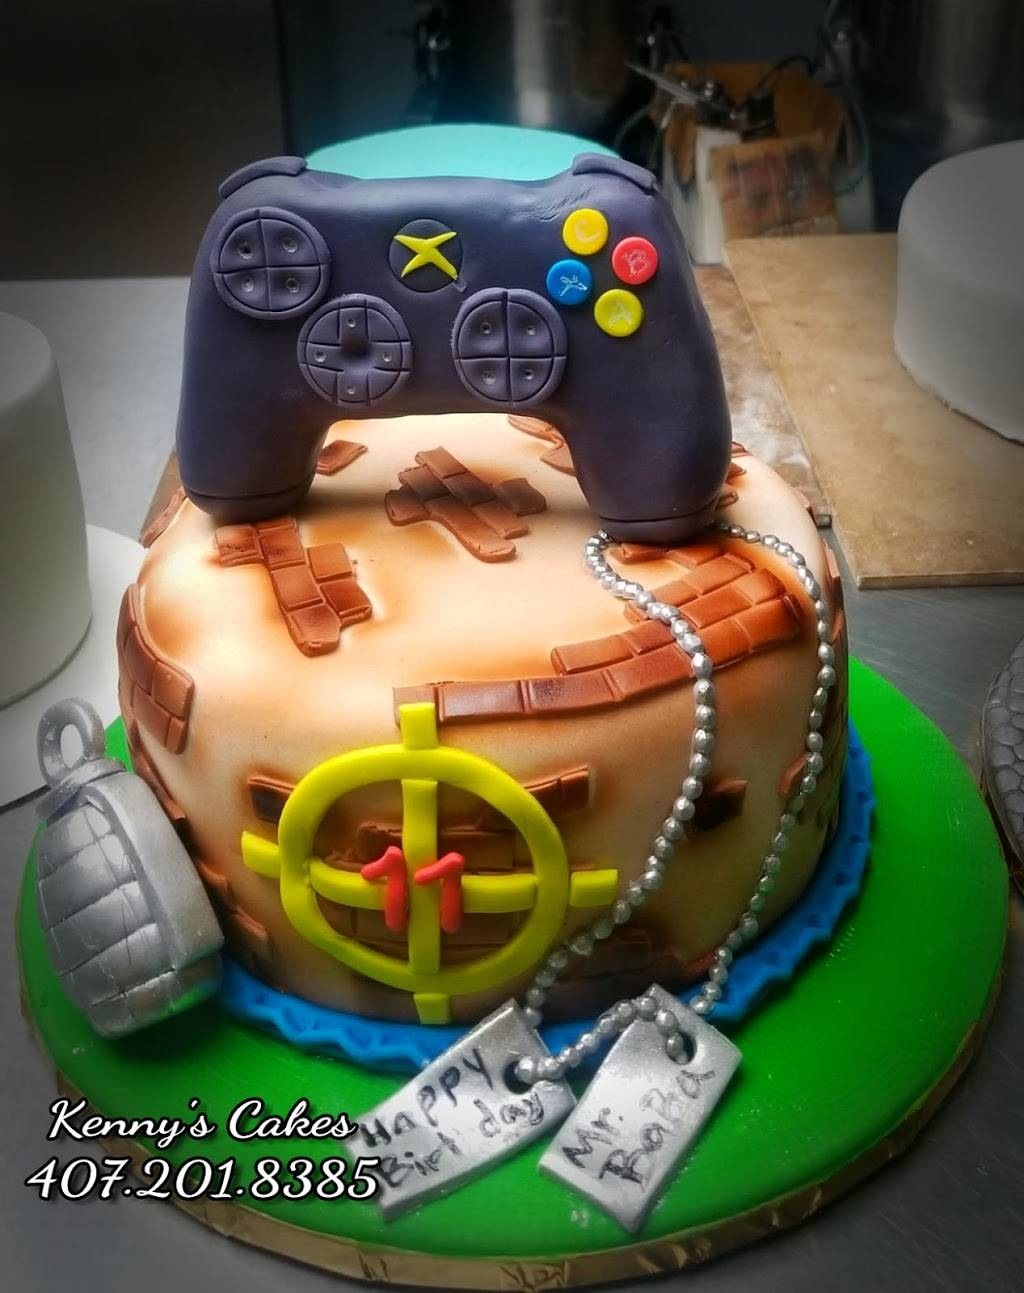 Kenny's Cakes | bakery | 10 W Dakin Ave, Kissimmee, FL 34741, USA | 4072018385 OR +1 407-201-8385